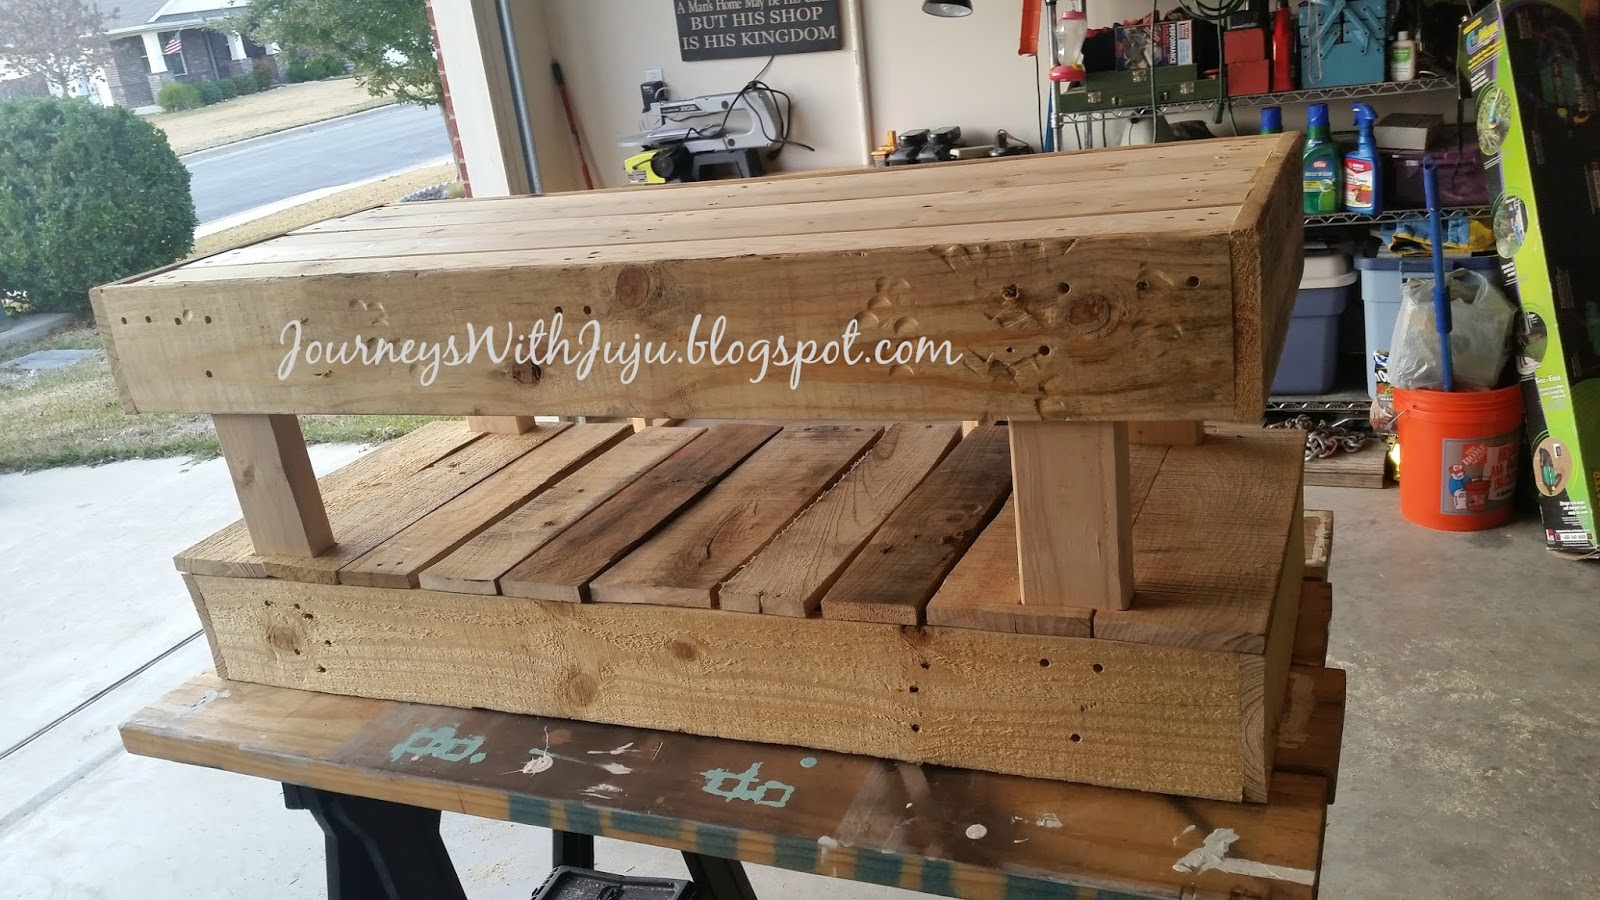 Journeys with juju diy bench from free pallets for Building a bench from pallets